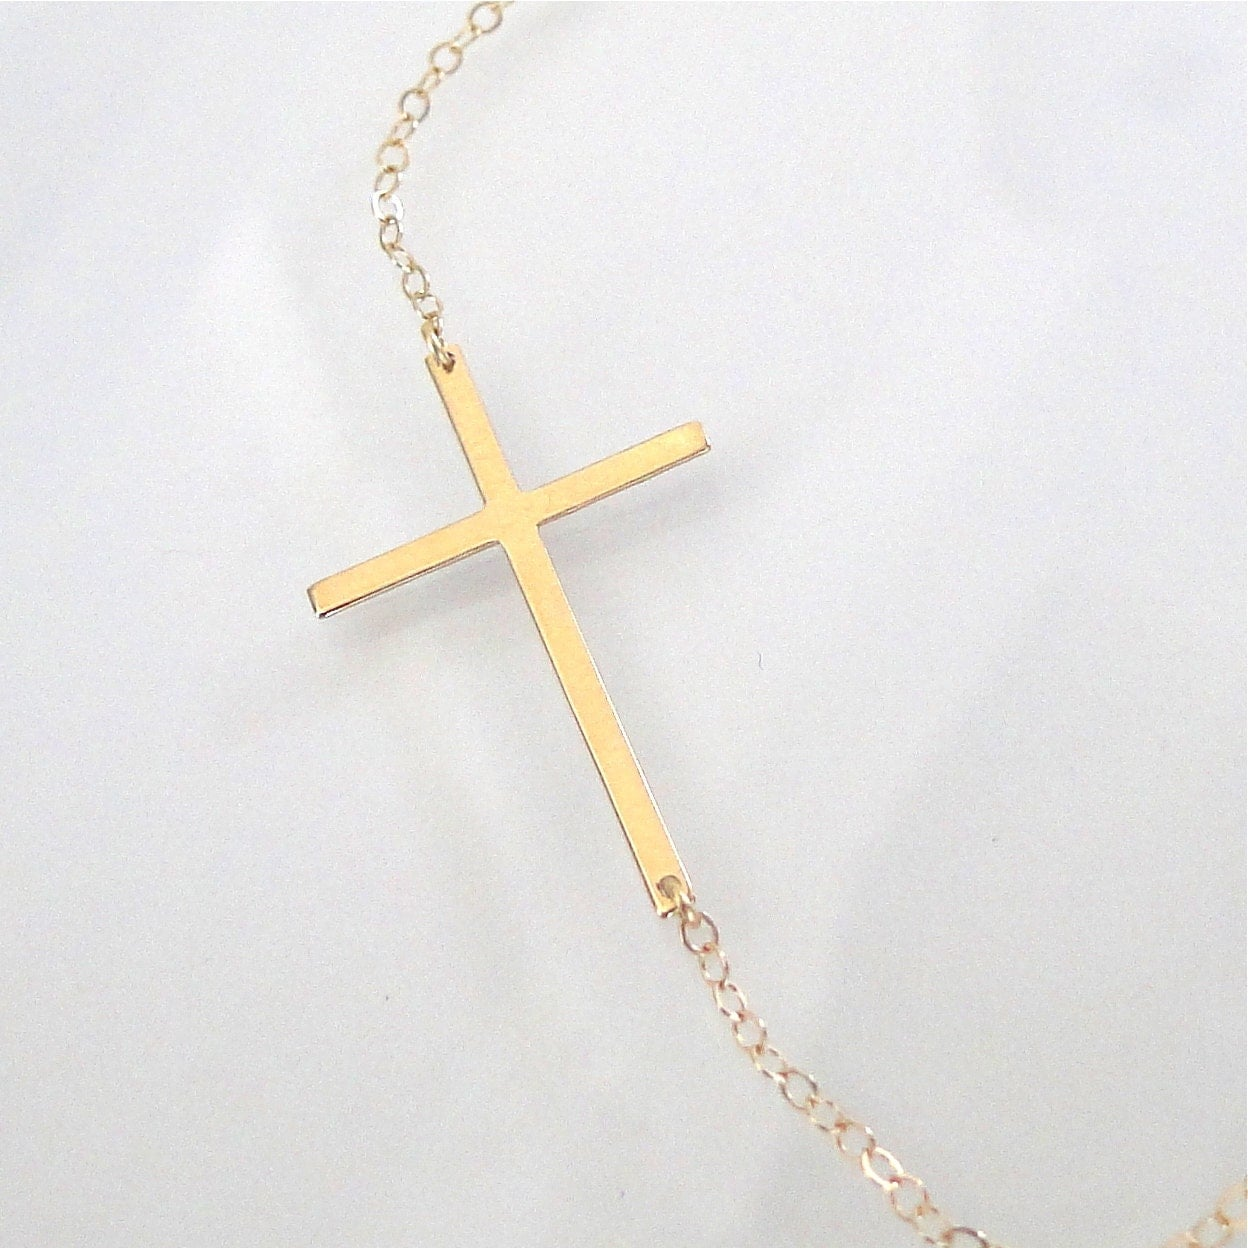 Sideways Cross Necklace 14k Gold Thin And Sleek Kelly Ripa